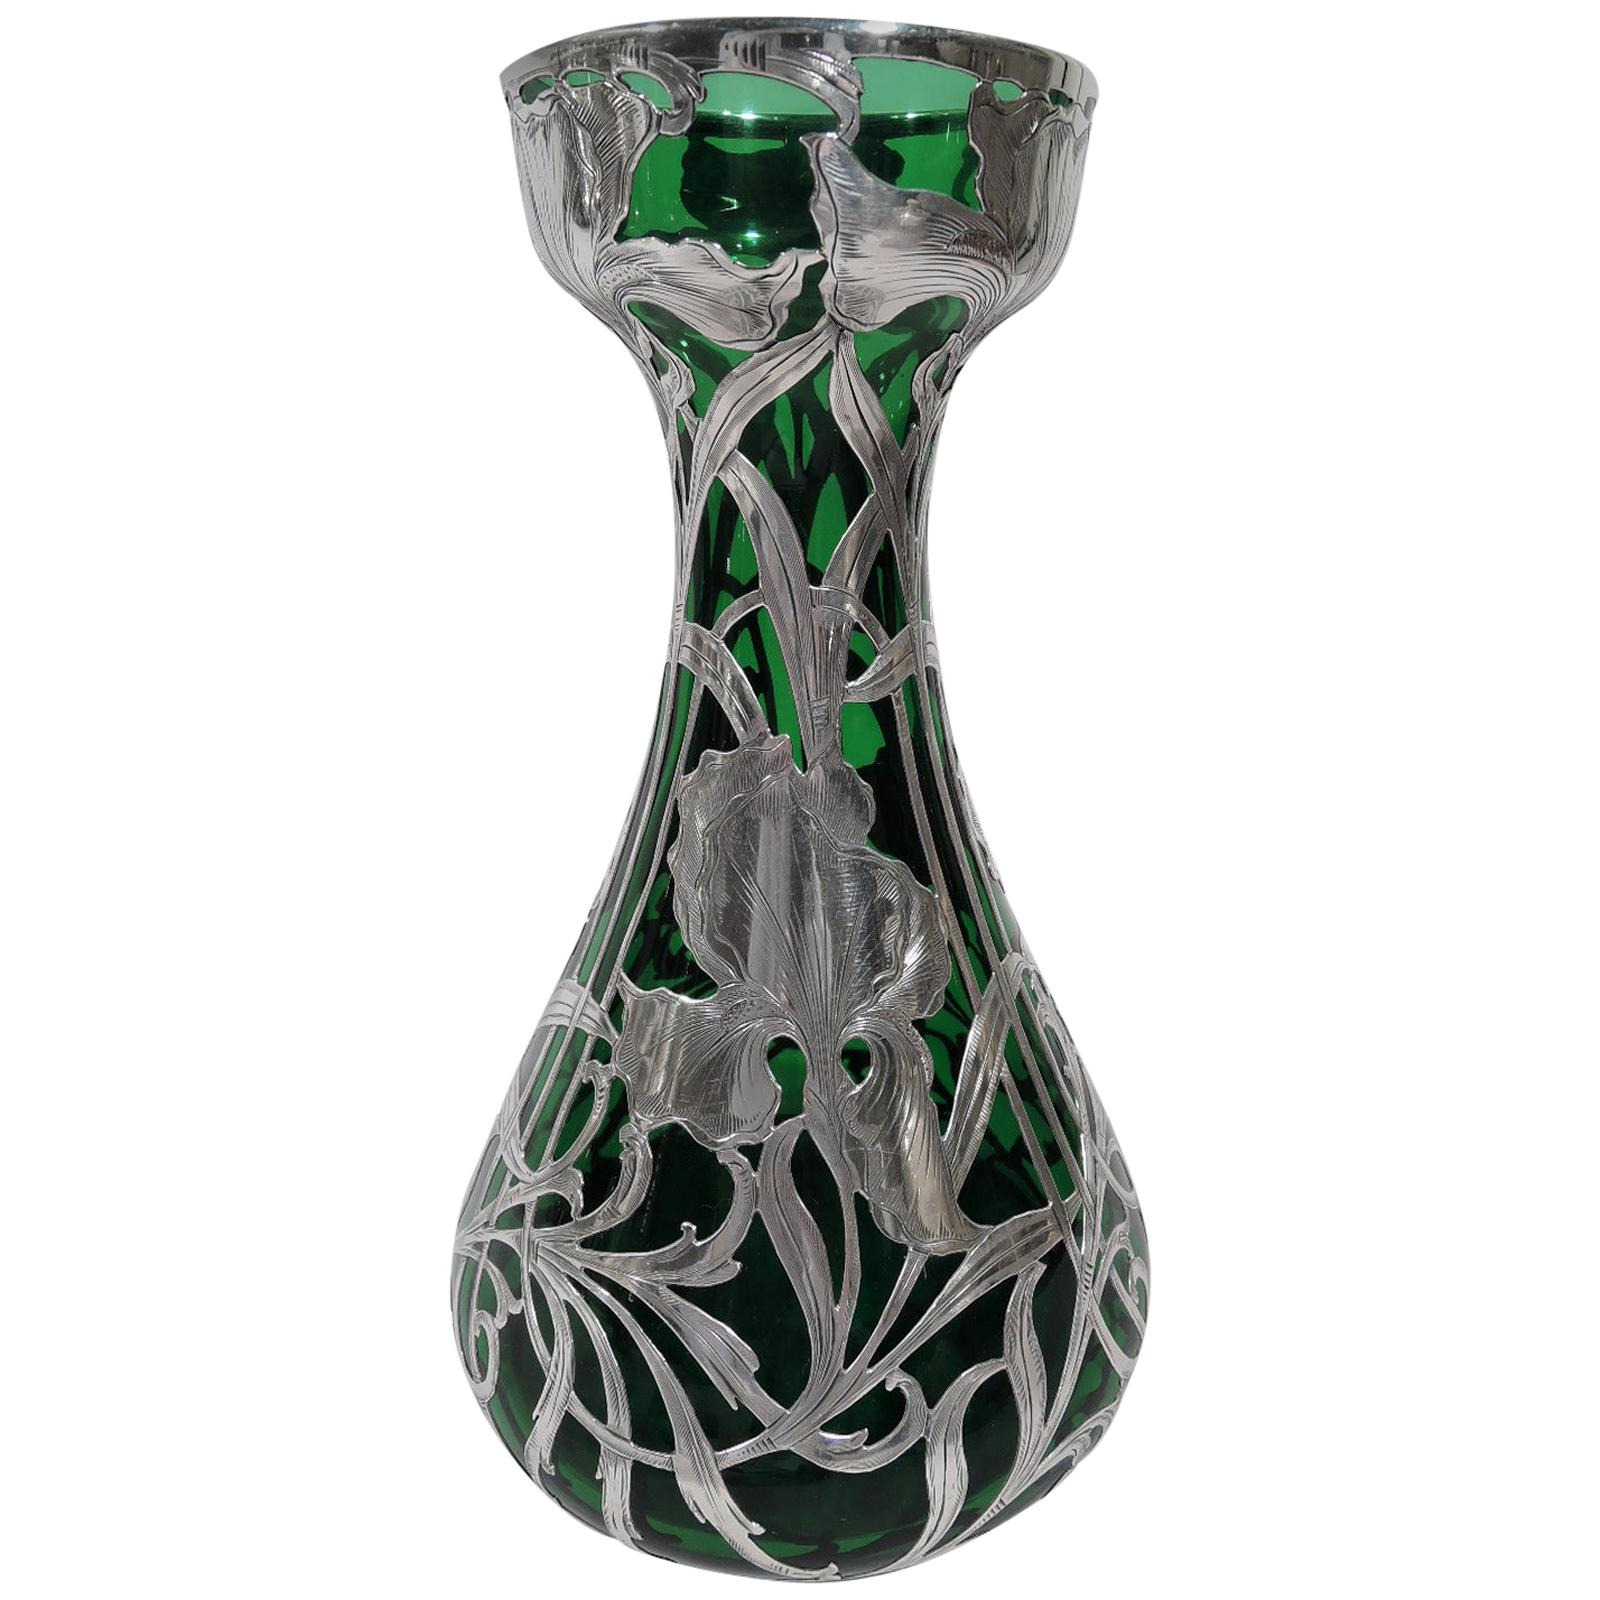 Antique Alvin Art Nouveau Green Silver Overlay Vase